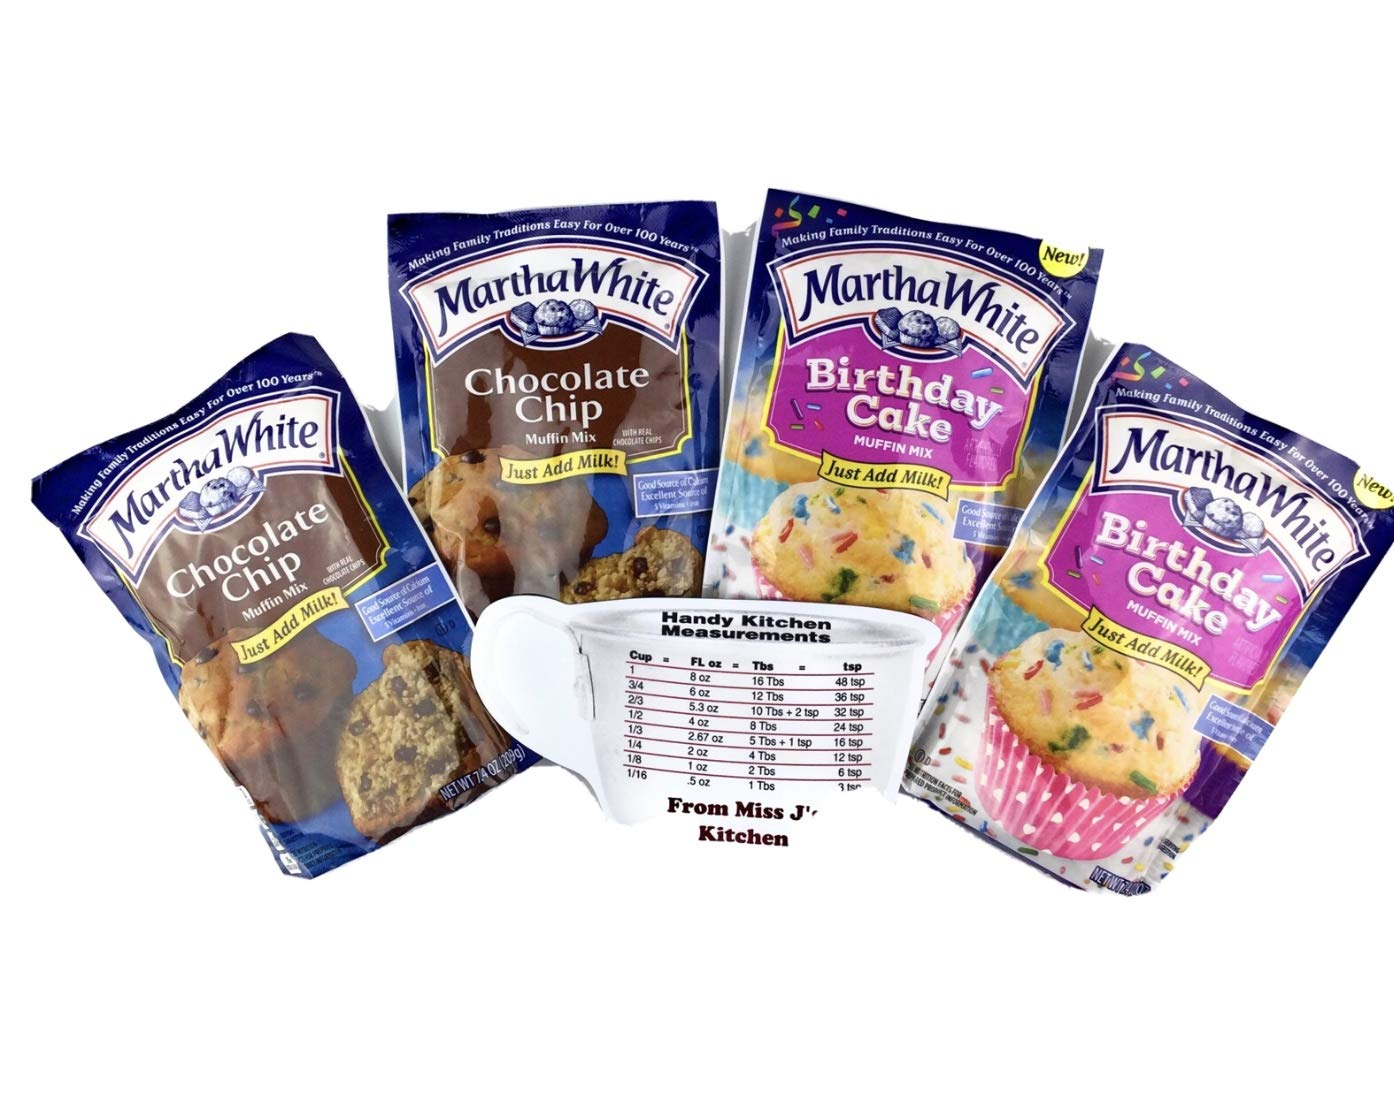 Generic Martha White Muffin Mix cheap - 2 Cake Recommended Birthday Chocolat and